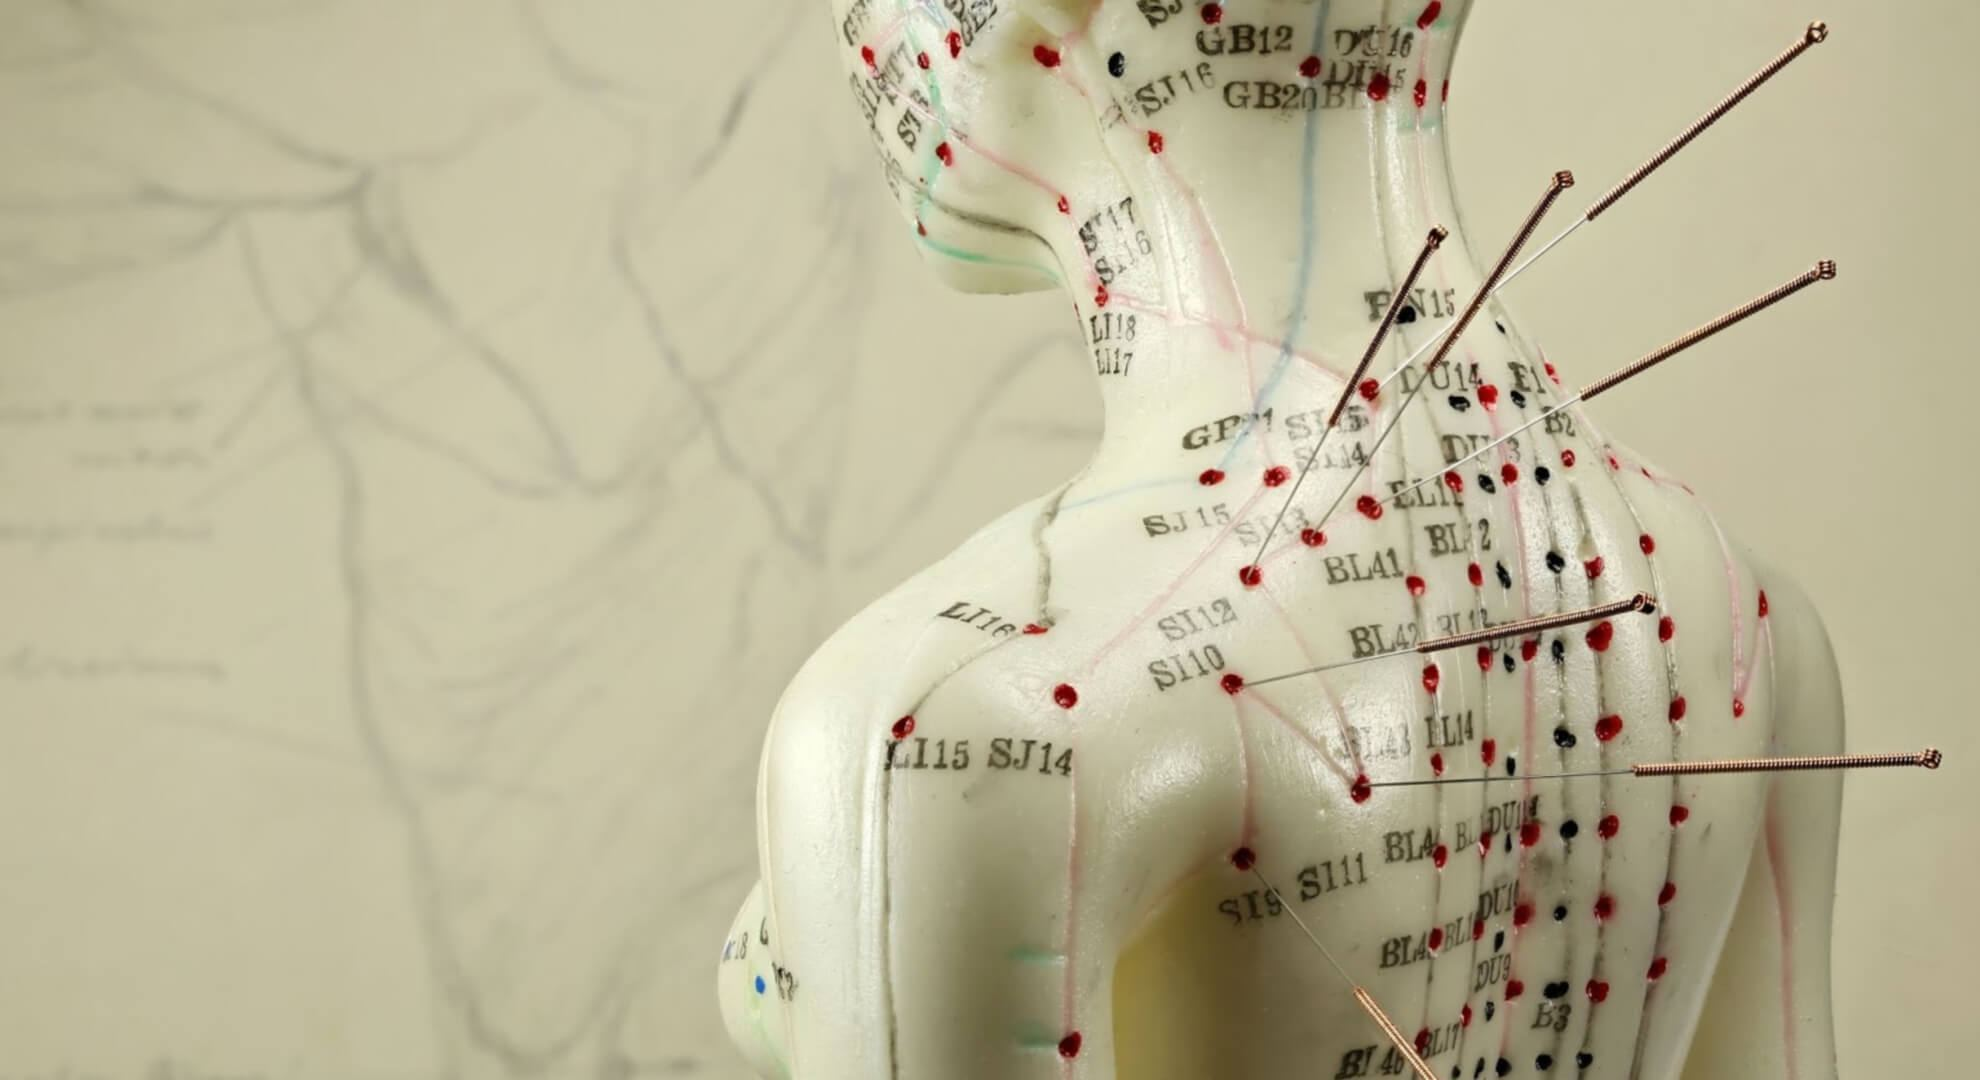 Acupuncture in Chinese medicine